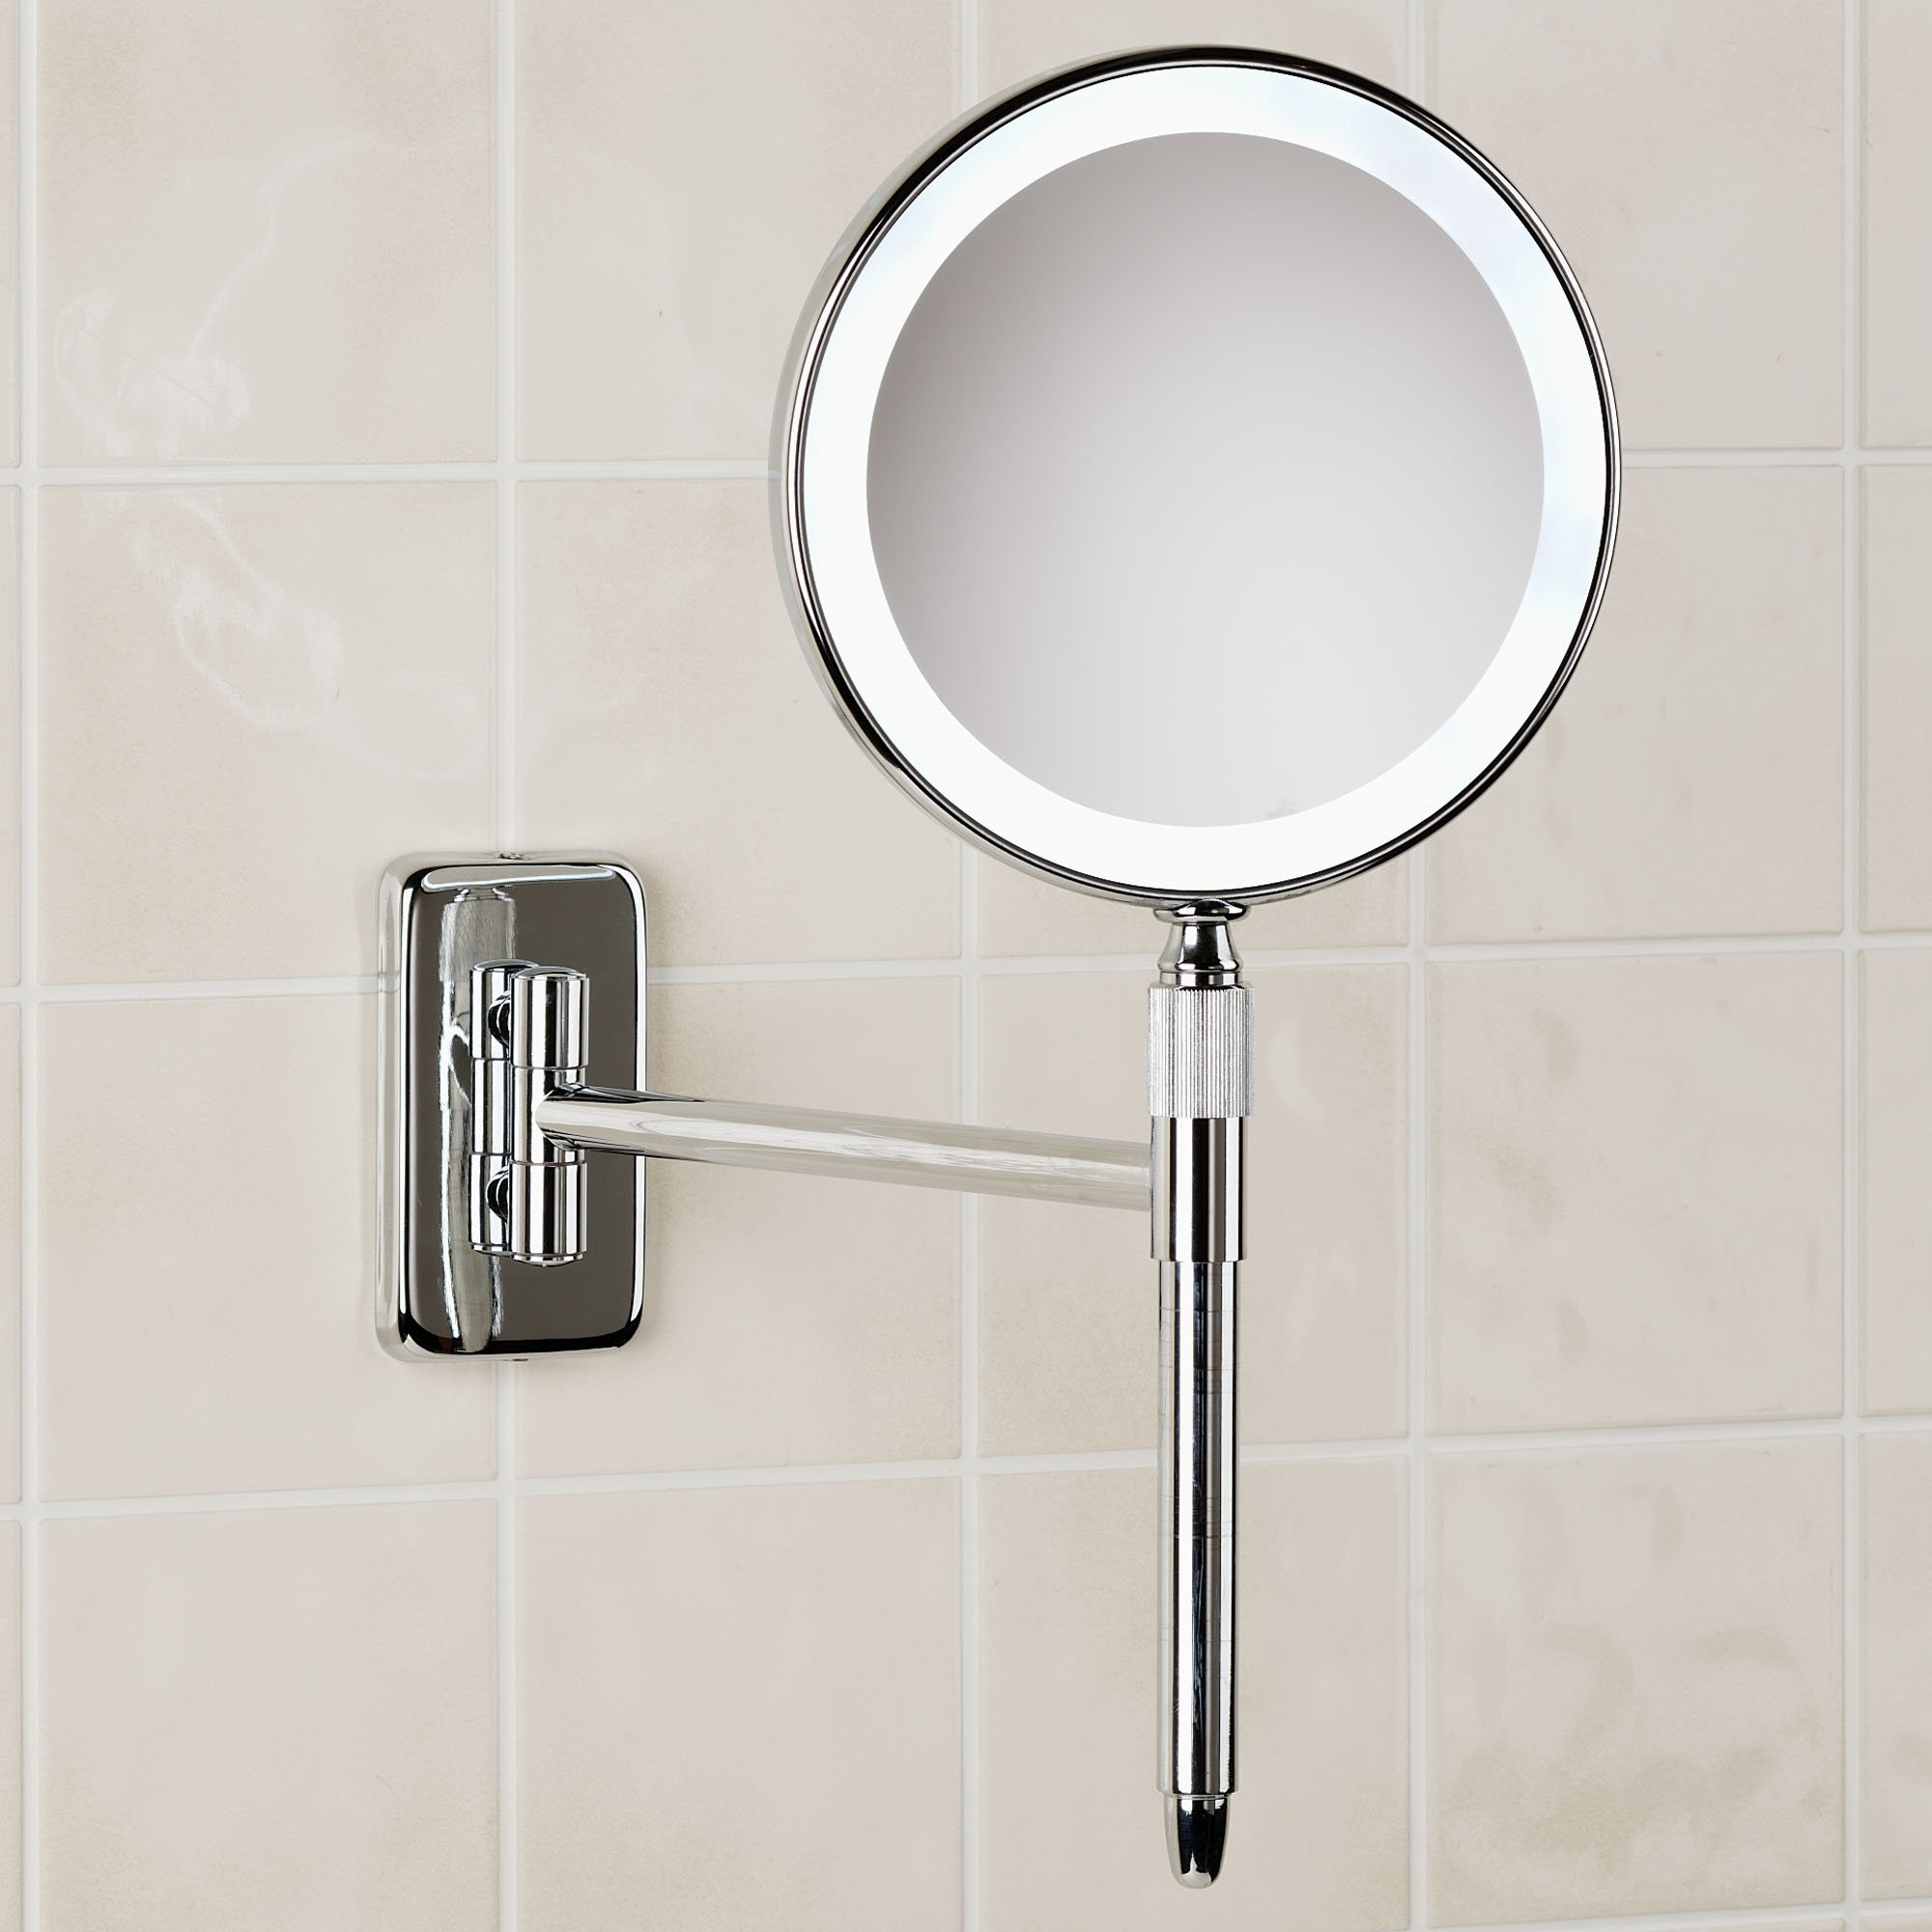 Magnifying Vanity Mirrors Bathroombedroom make your home more beautiful with lighted vanity mirror